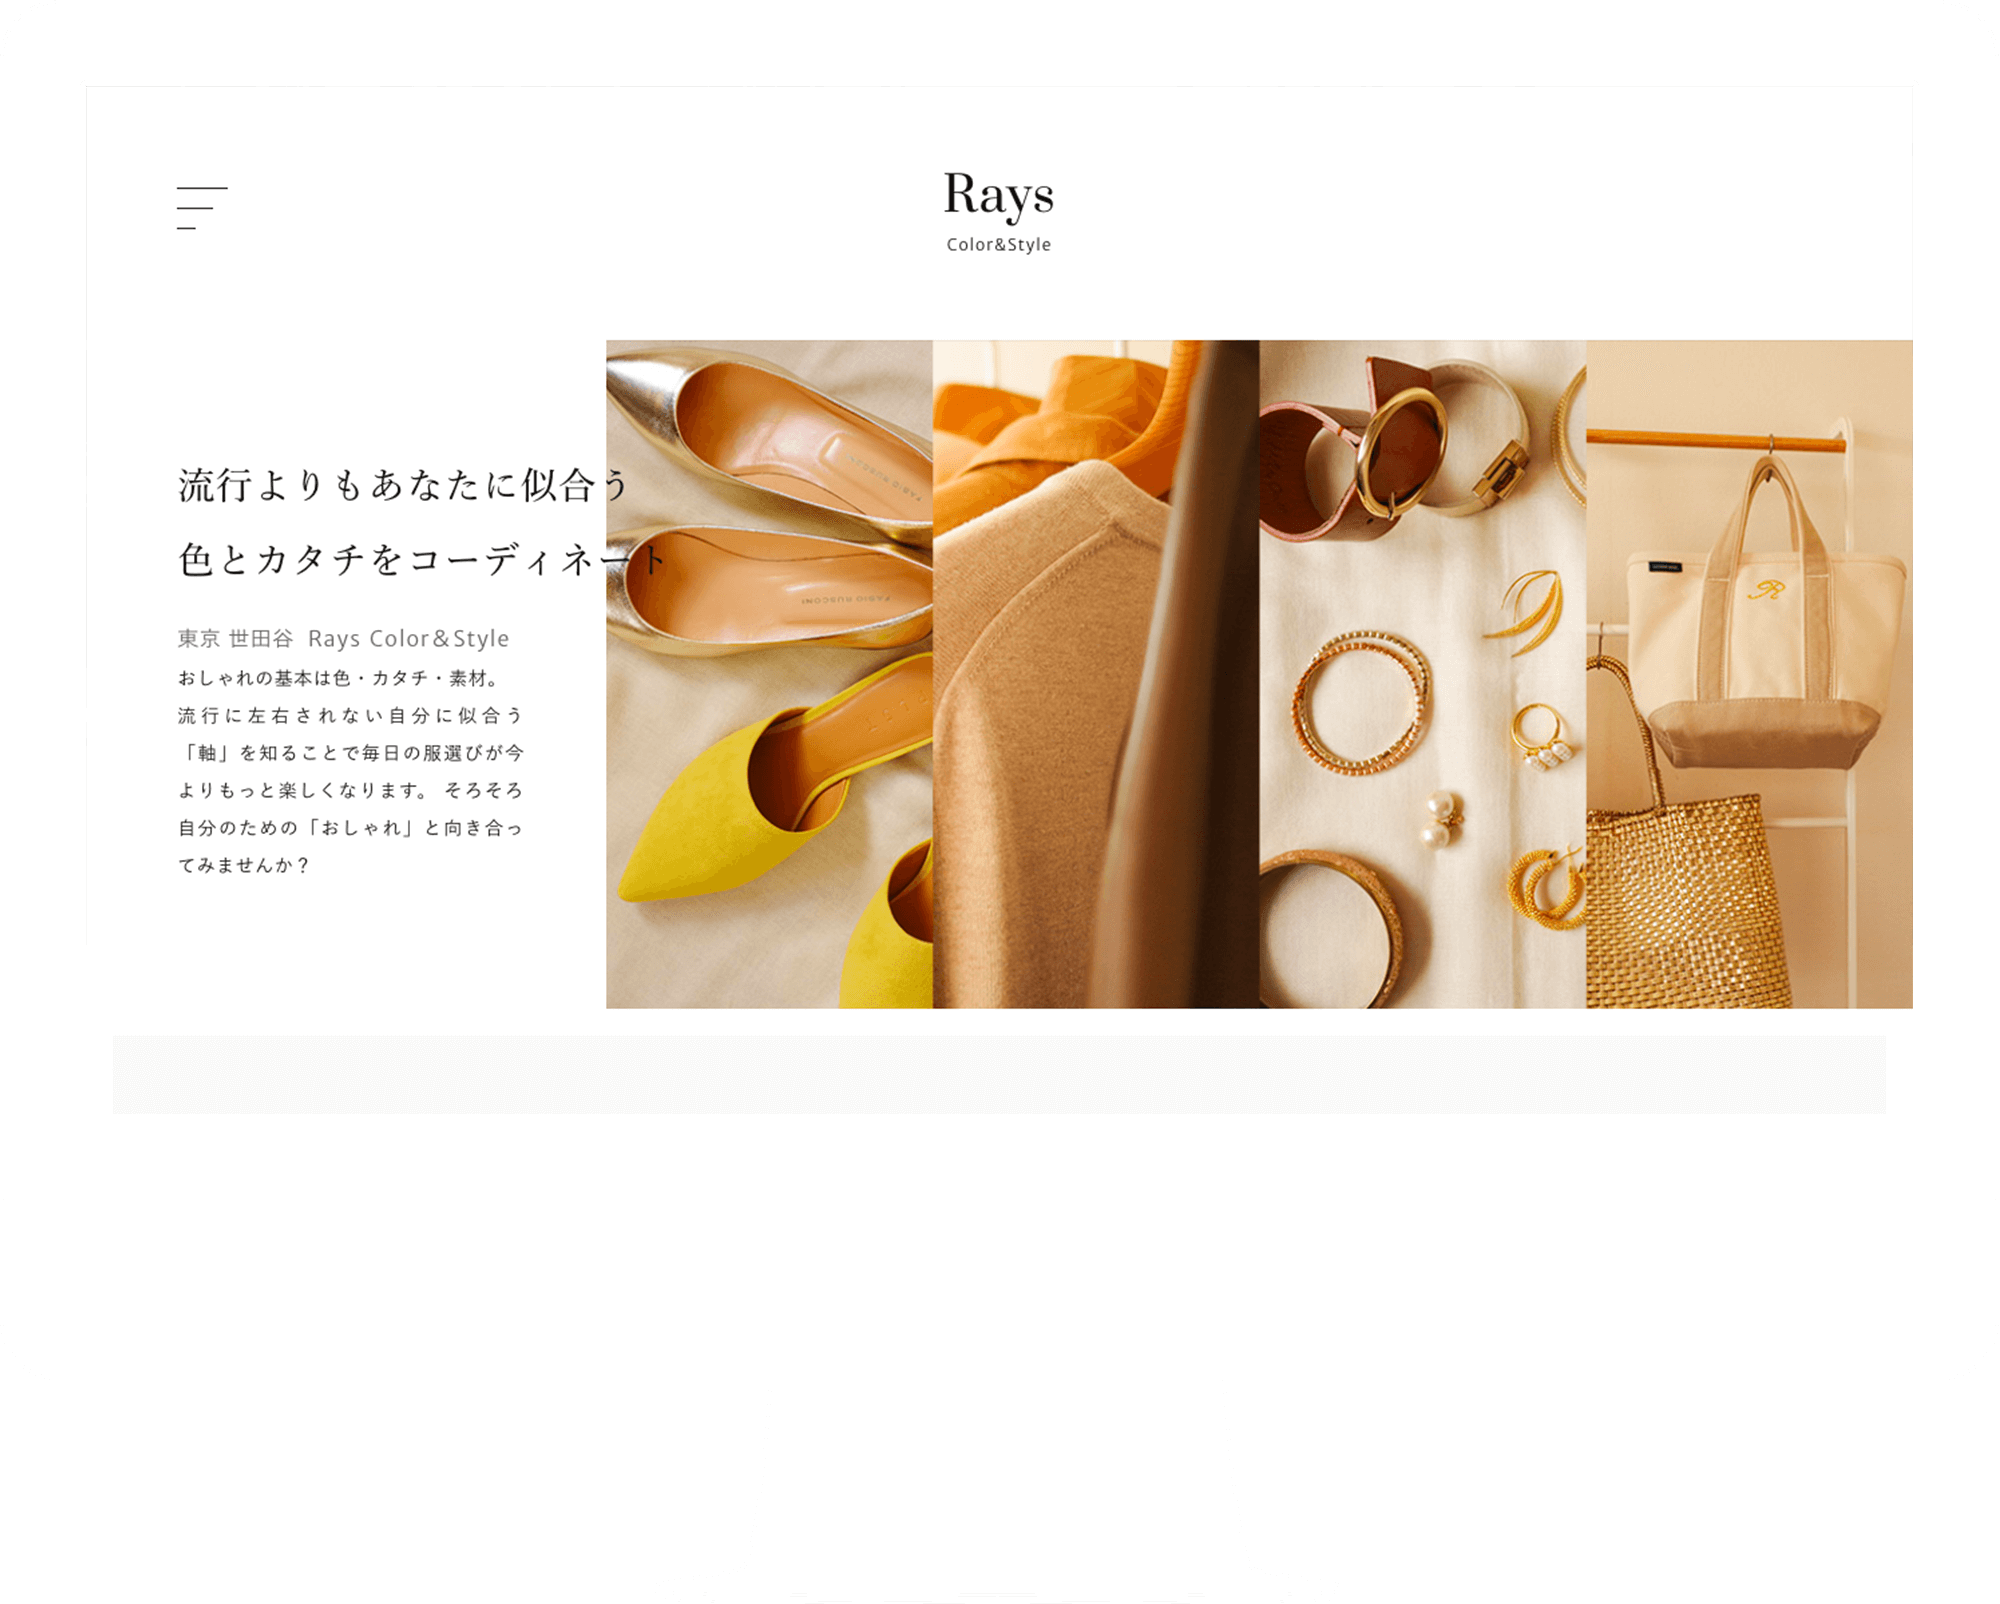 Rays color & style-PC表示